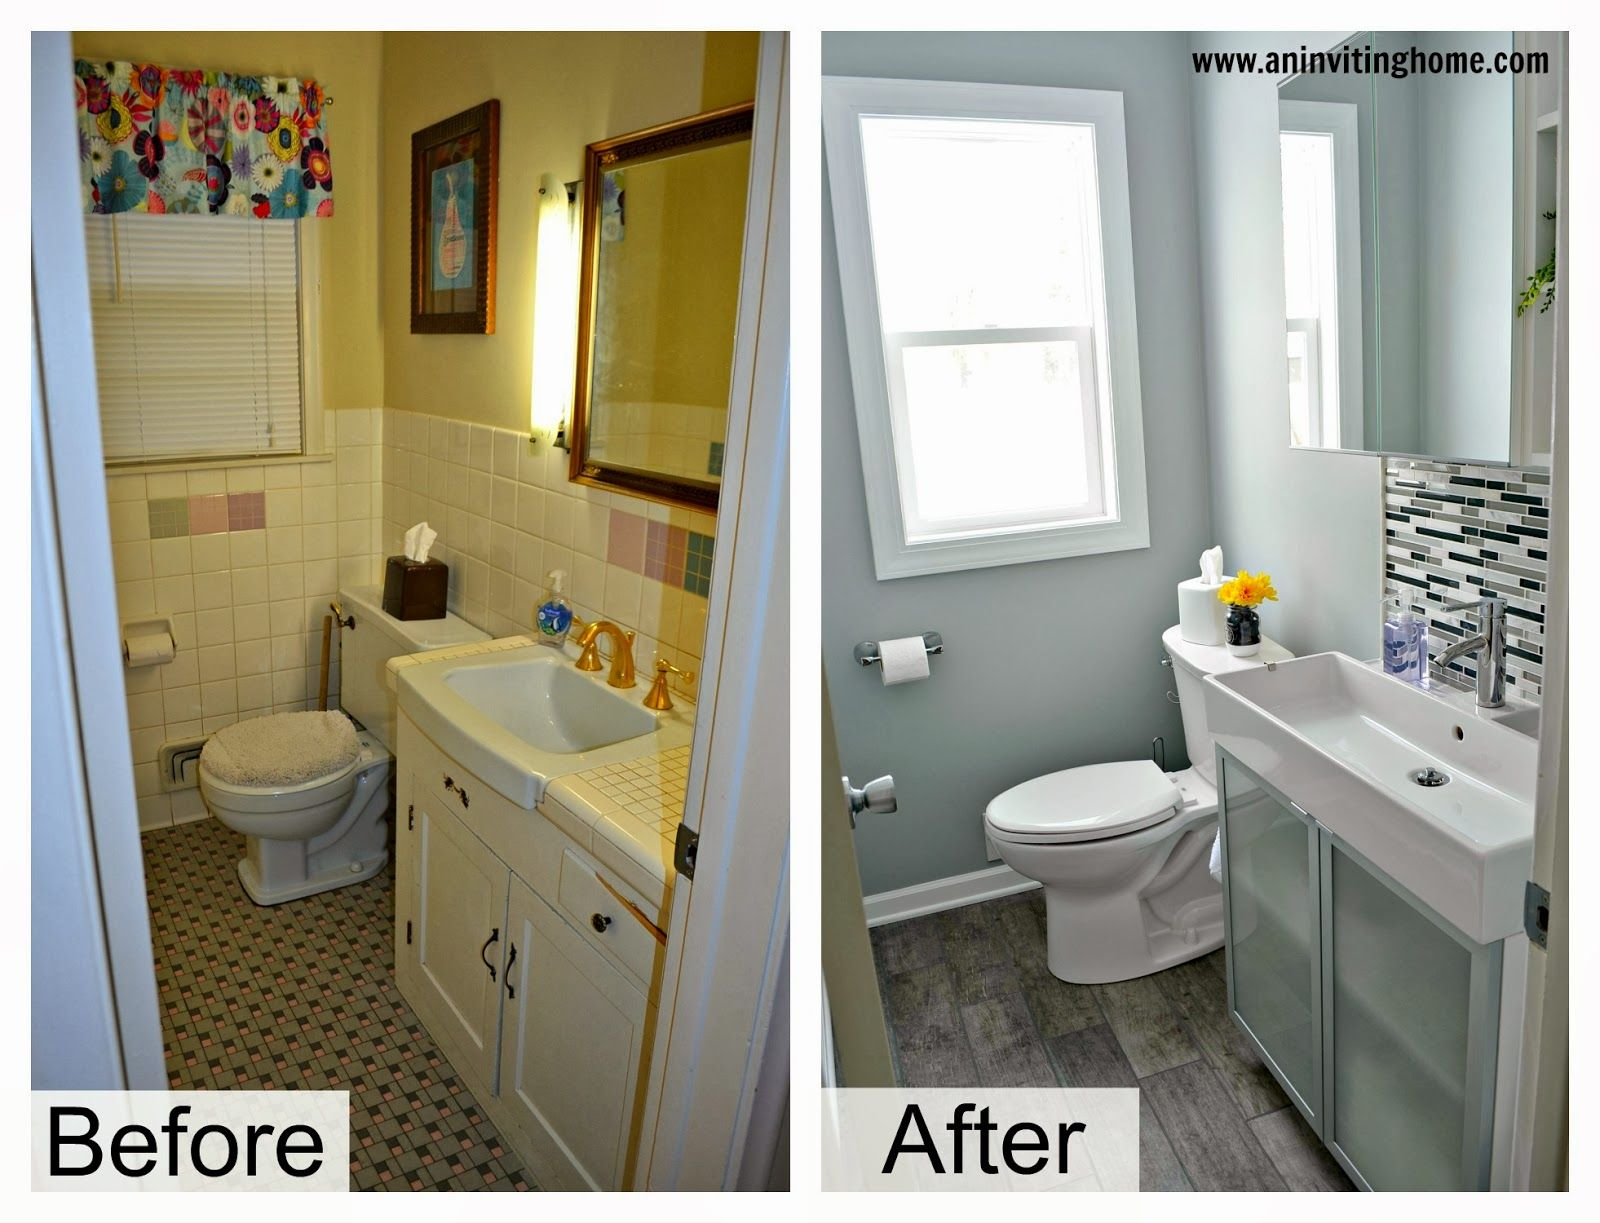 Monthly DecorDIY Budget Breakdown January Wwwaninvitinghome - Before and after bathroom updates